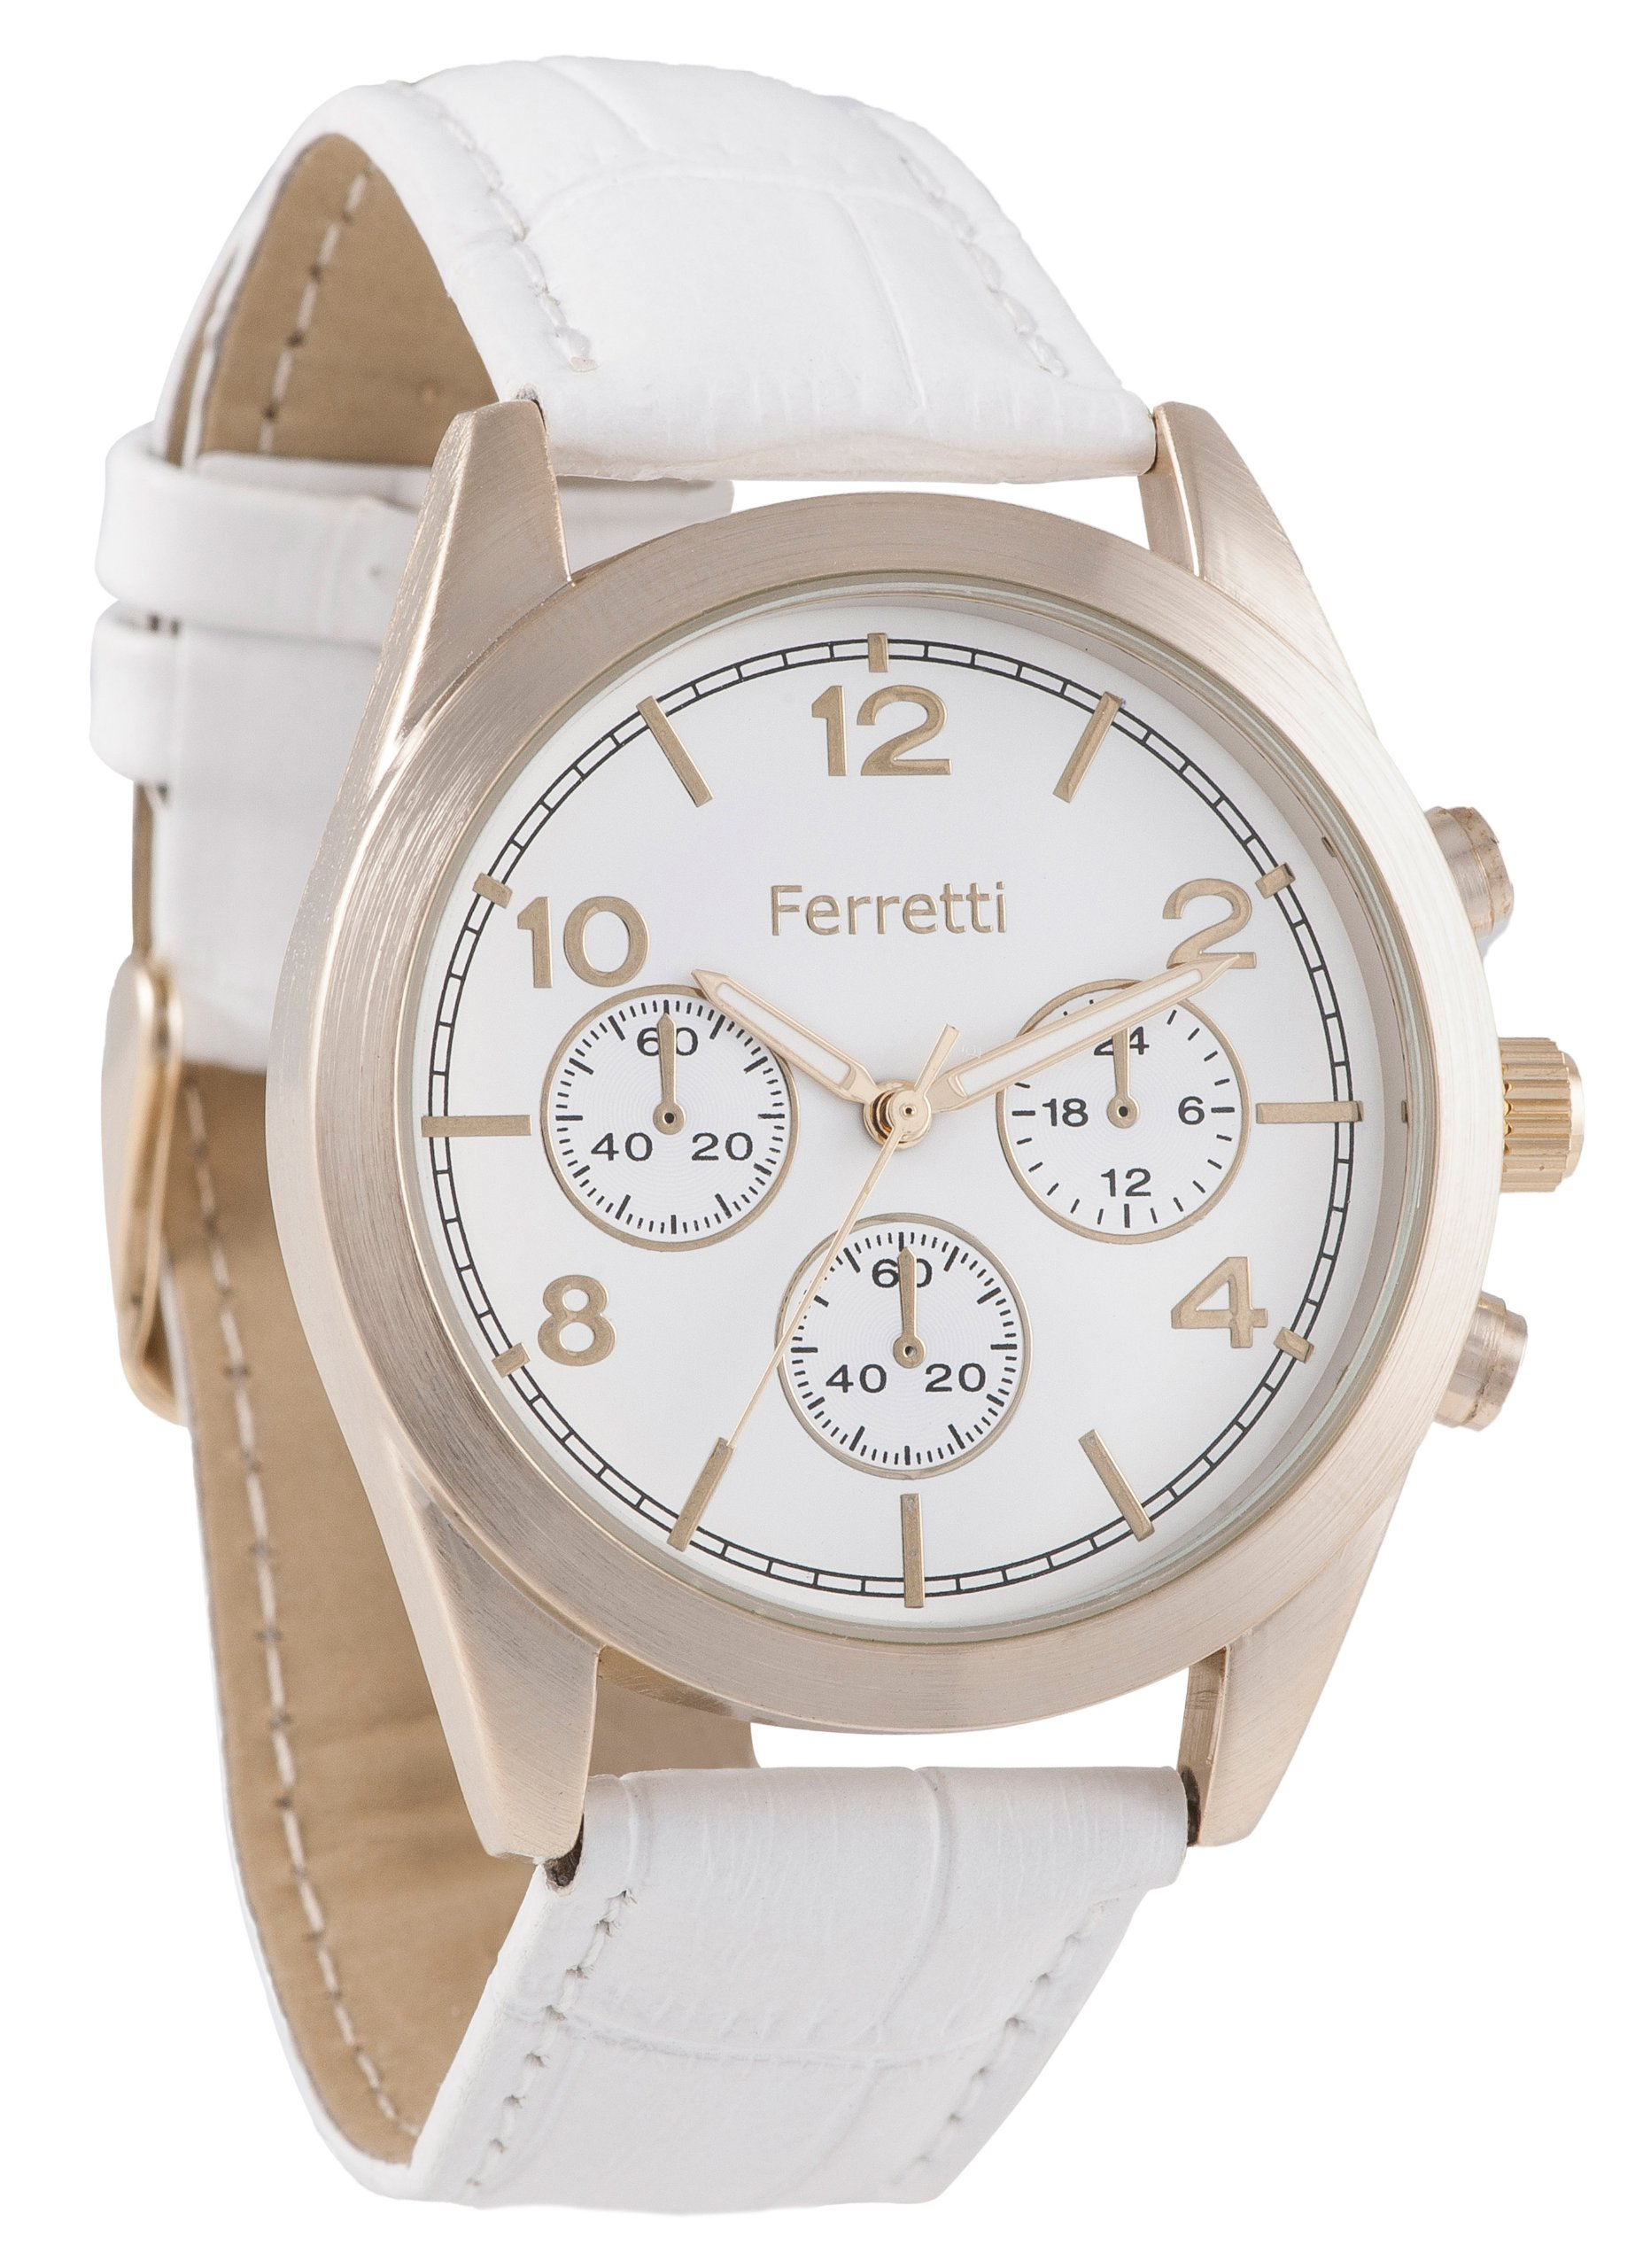 Ferretti Women's | White Genuine Leather Band with Crocodile Pattern Watch | FT11001